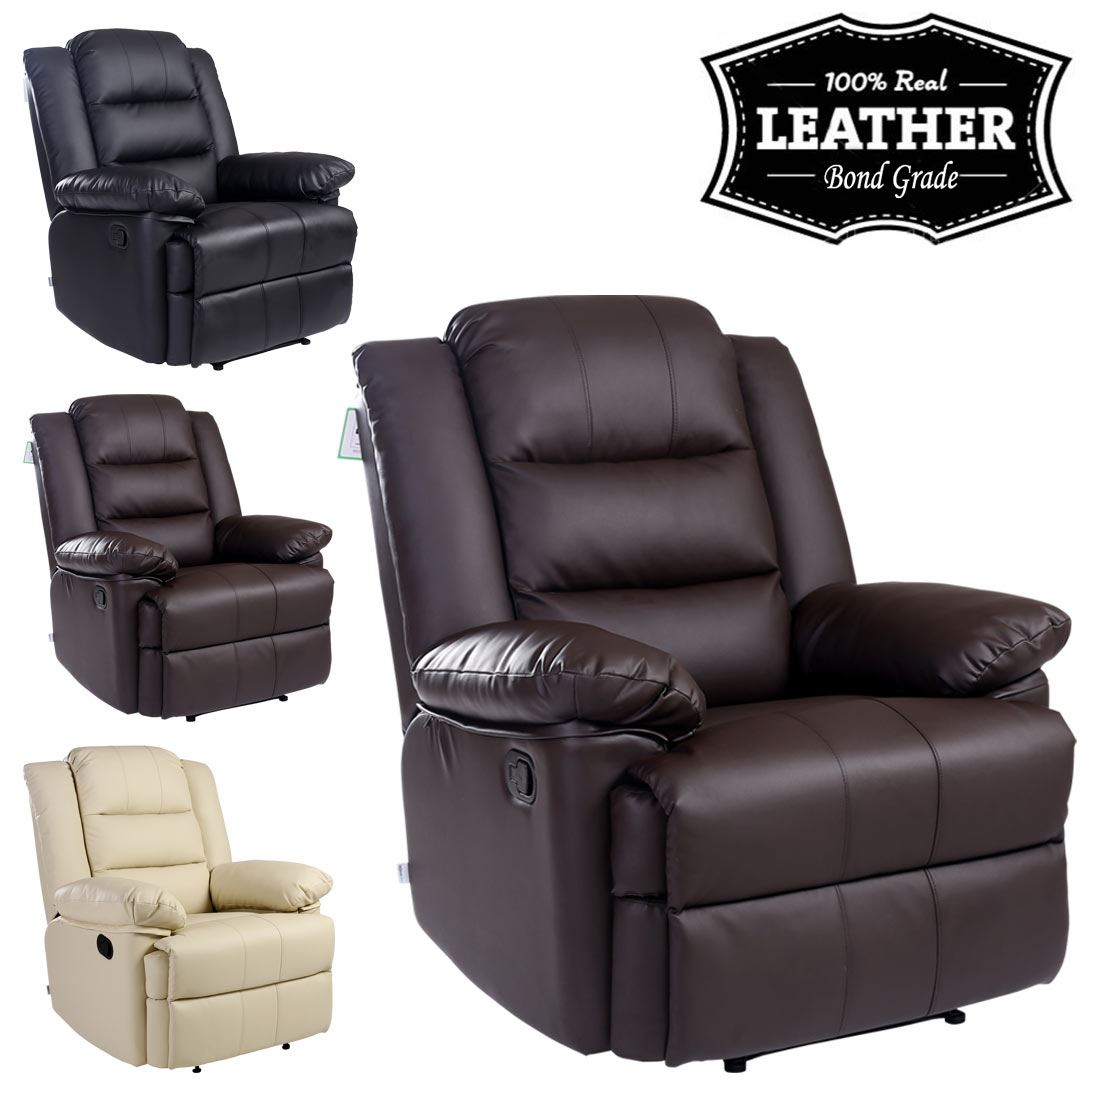 Loxley Leather Recliner Armchair Sofa Home Lounge Chair Pertaining To Sofa Lounge Chairs (View 5 of 15)